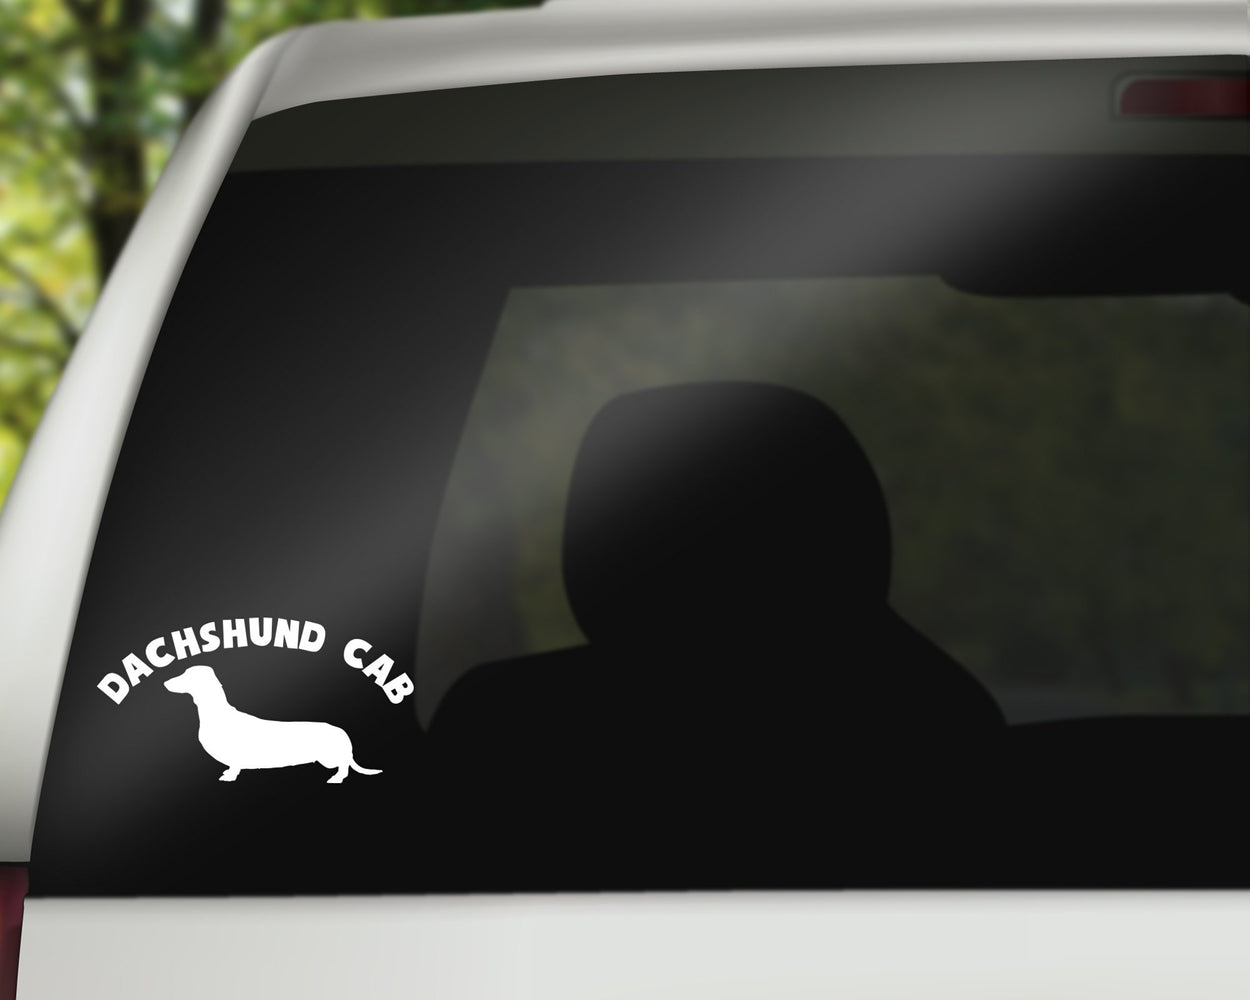 Dachshund Cab Decal, Car Decals, Personally Yours Accessories